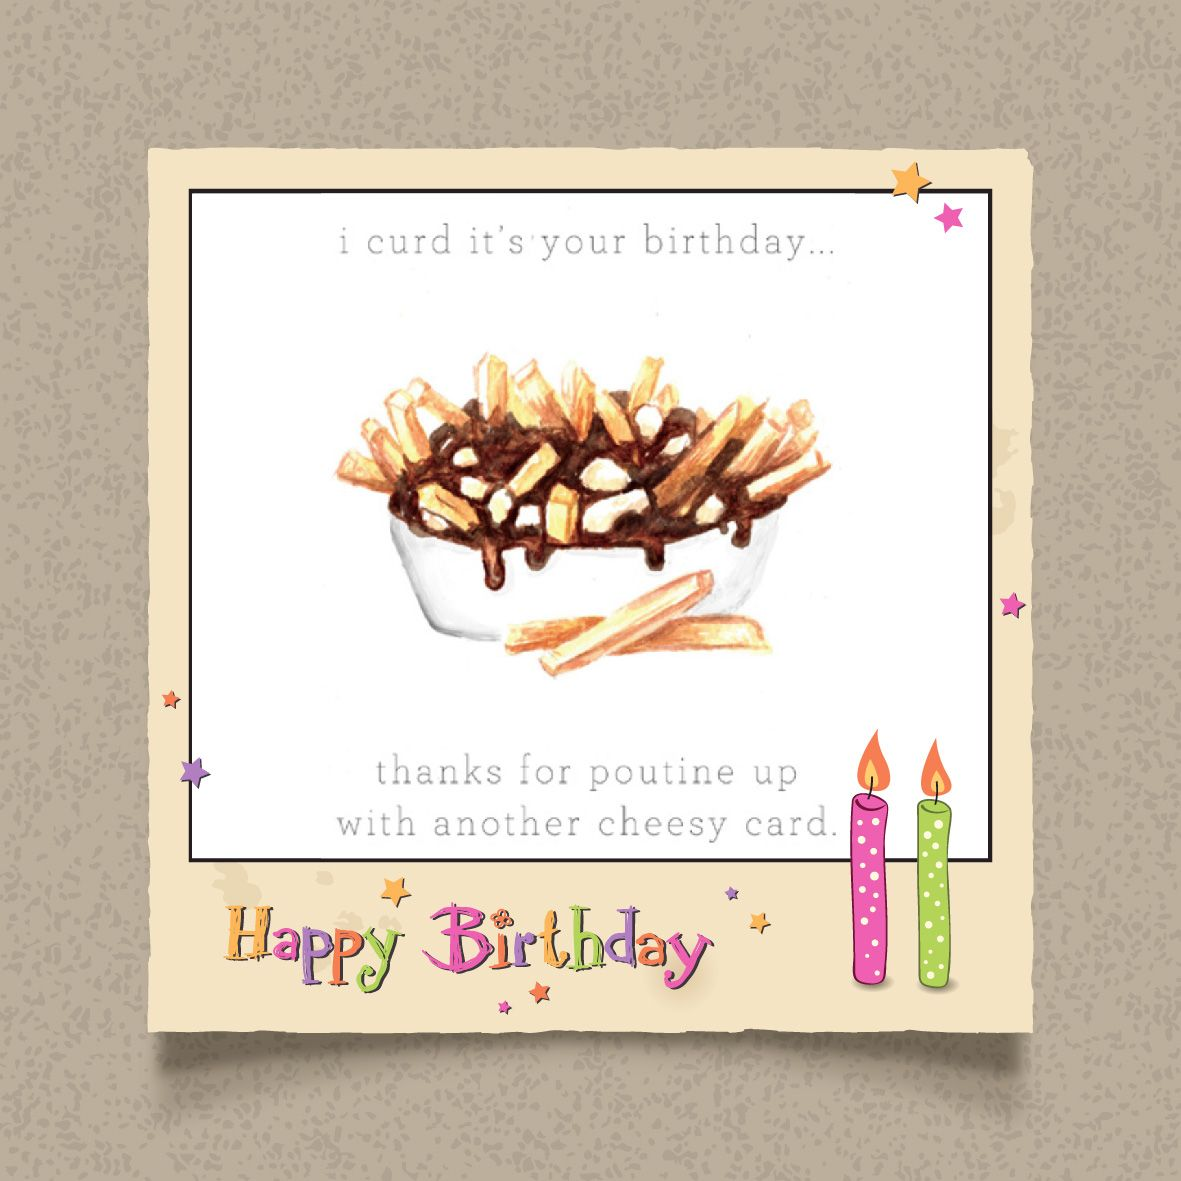 I Curd It S Your Birthday Poutine Greeting Card Birthday Greeting Cards Funny Greeting Cards Beautiful Greeting Cards